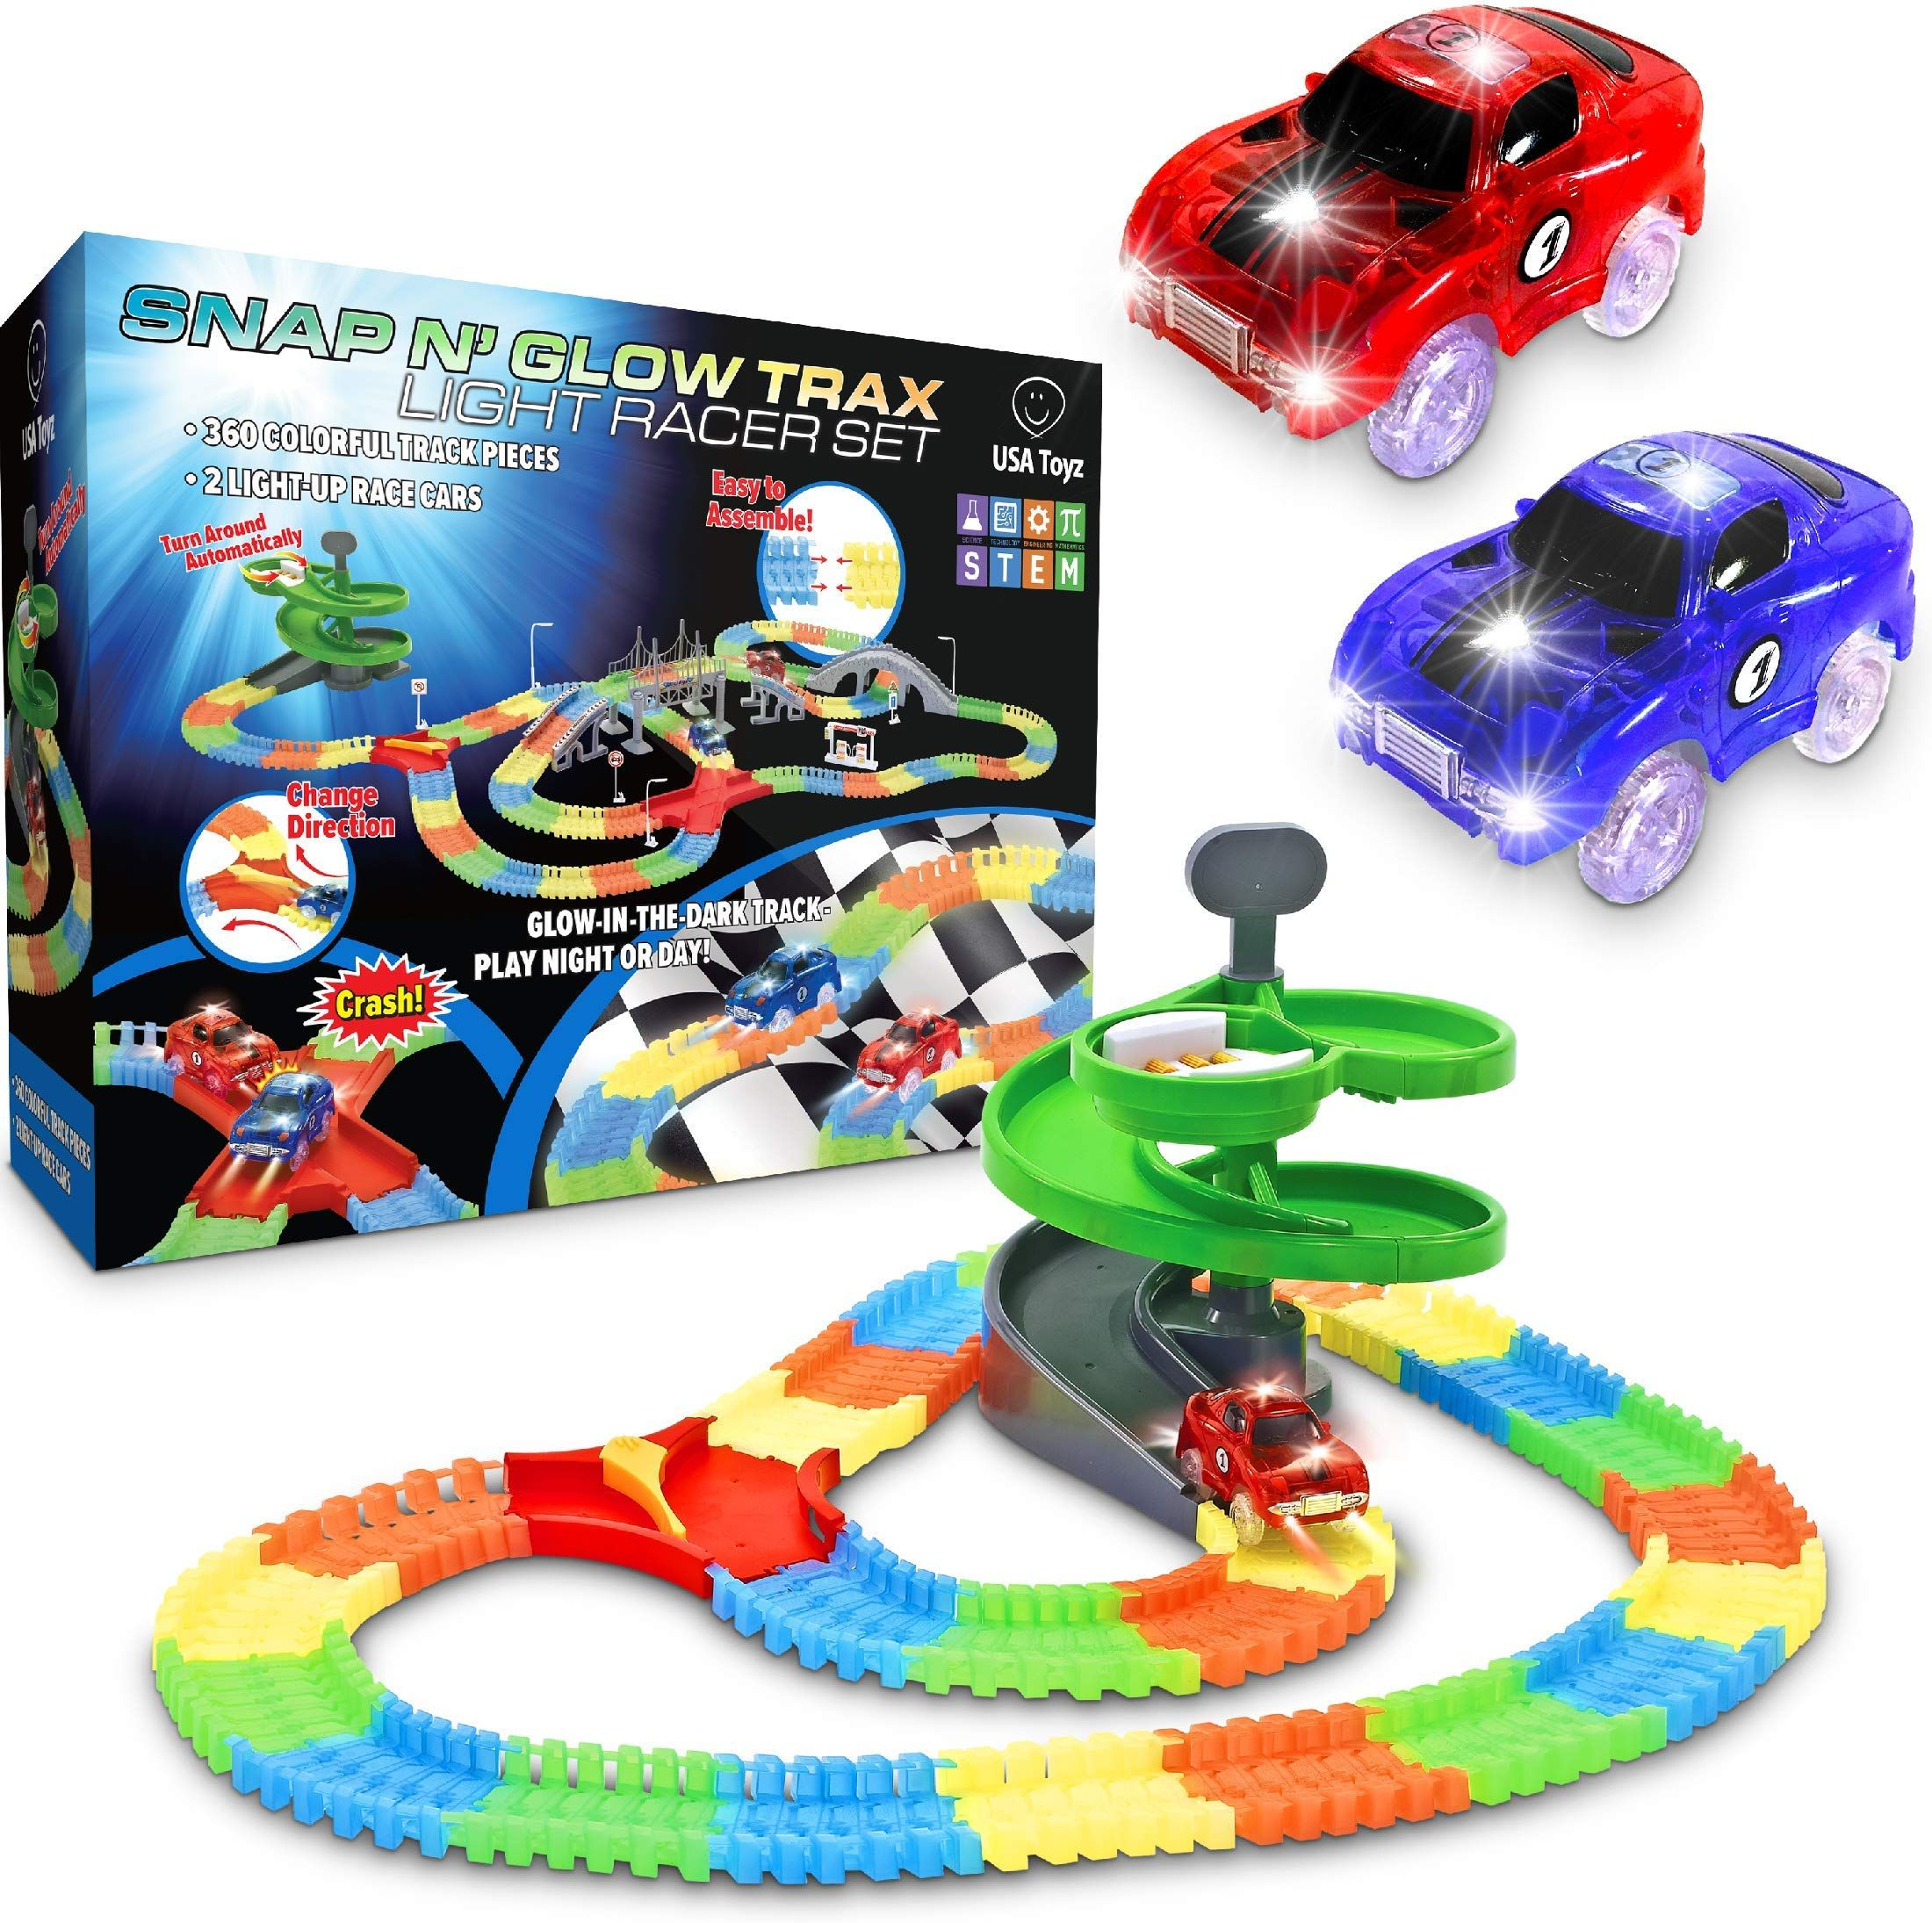 FORCE1 CARS Race car track, Toy car, Track toy